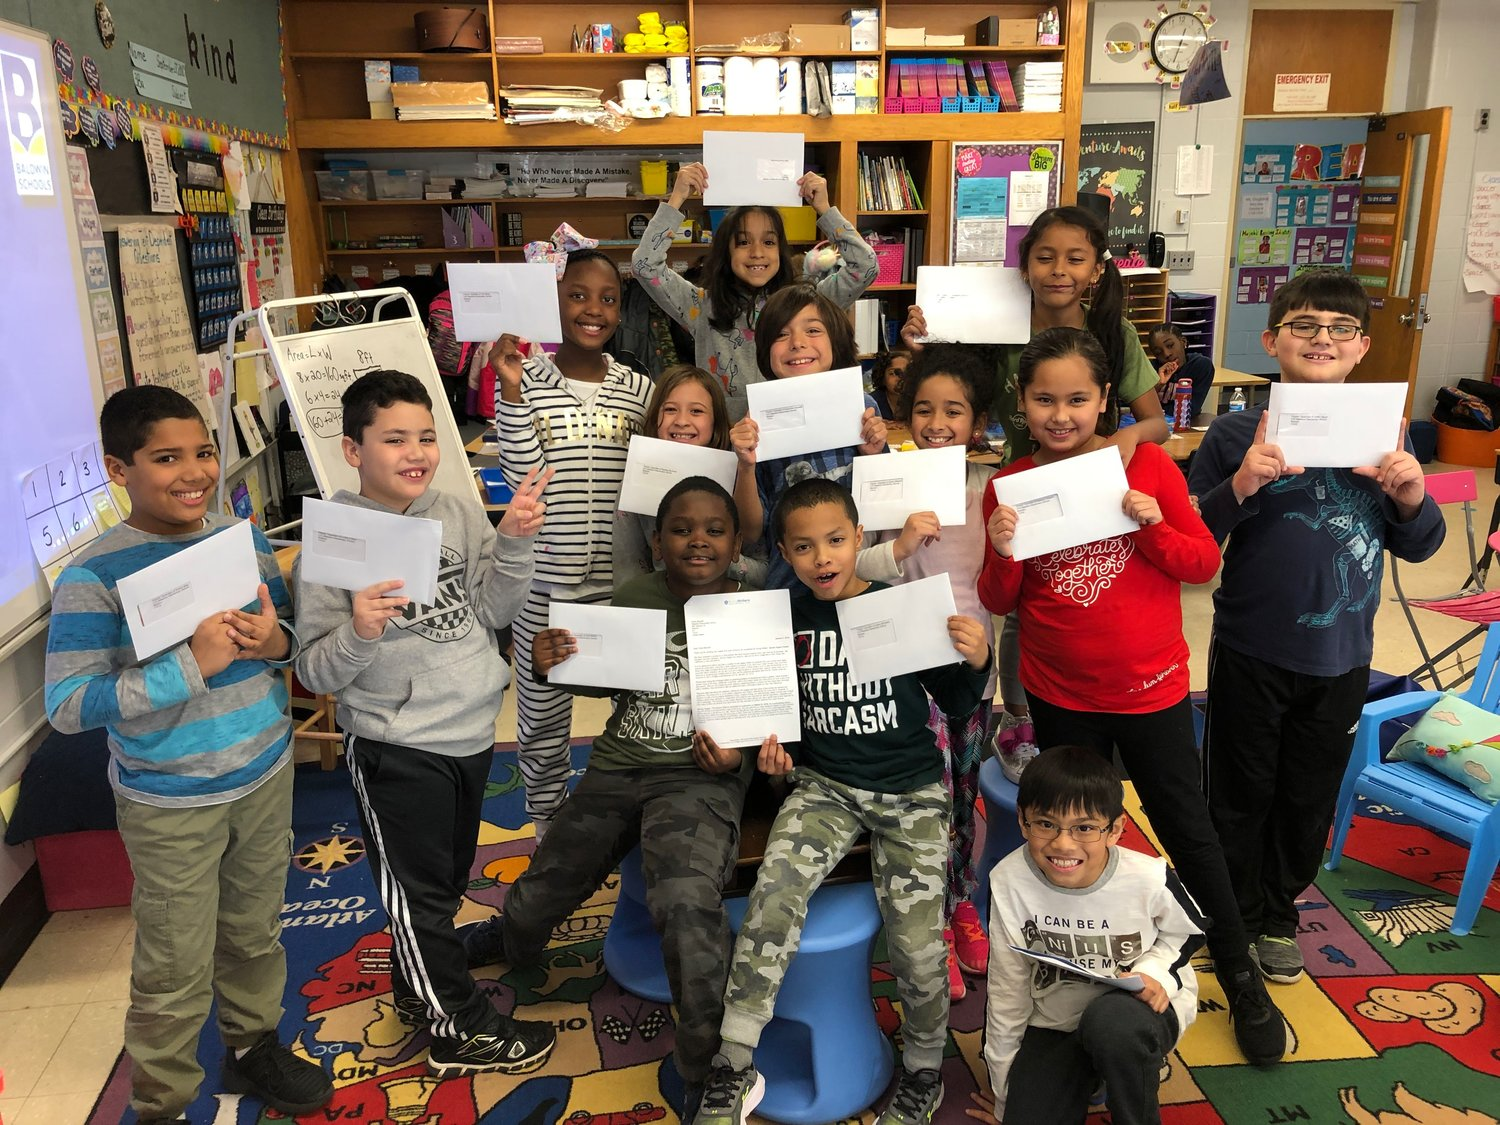 Thirteen Meadow Elementary School students will have their writing preserved in the Library of Congress.